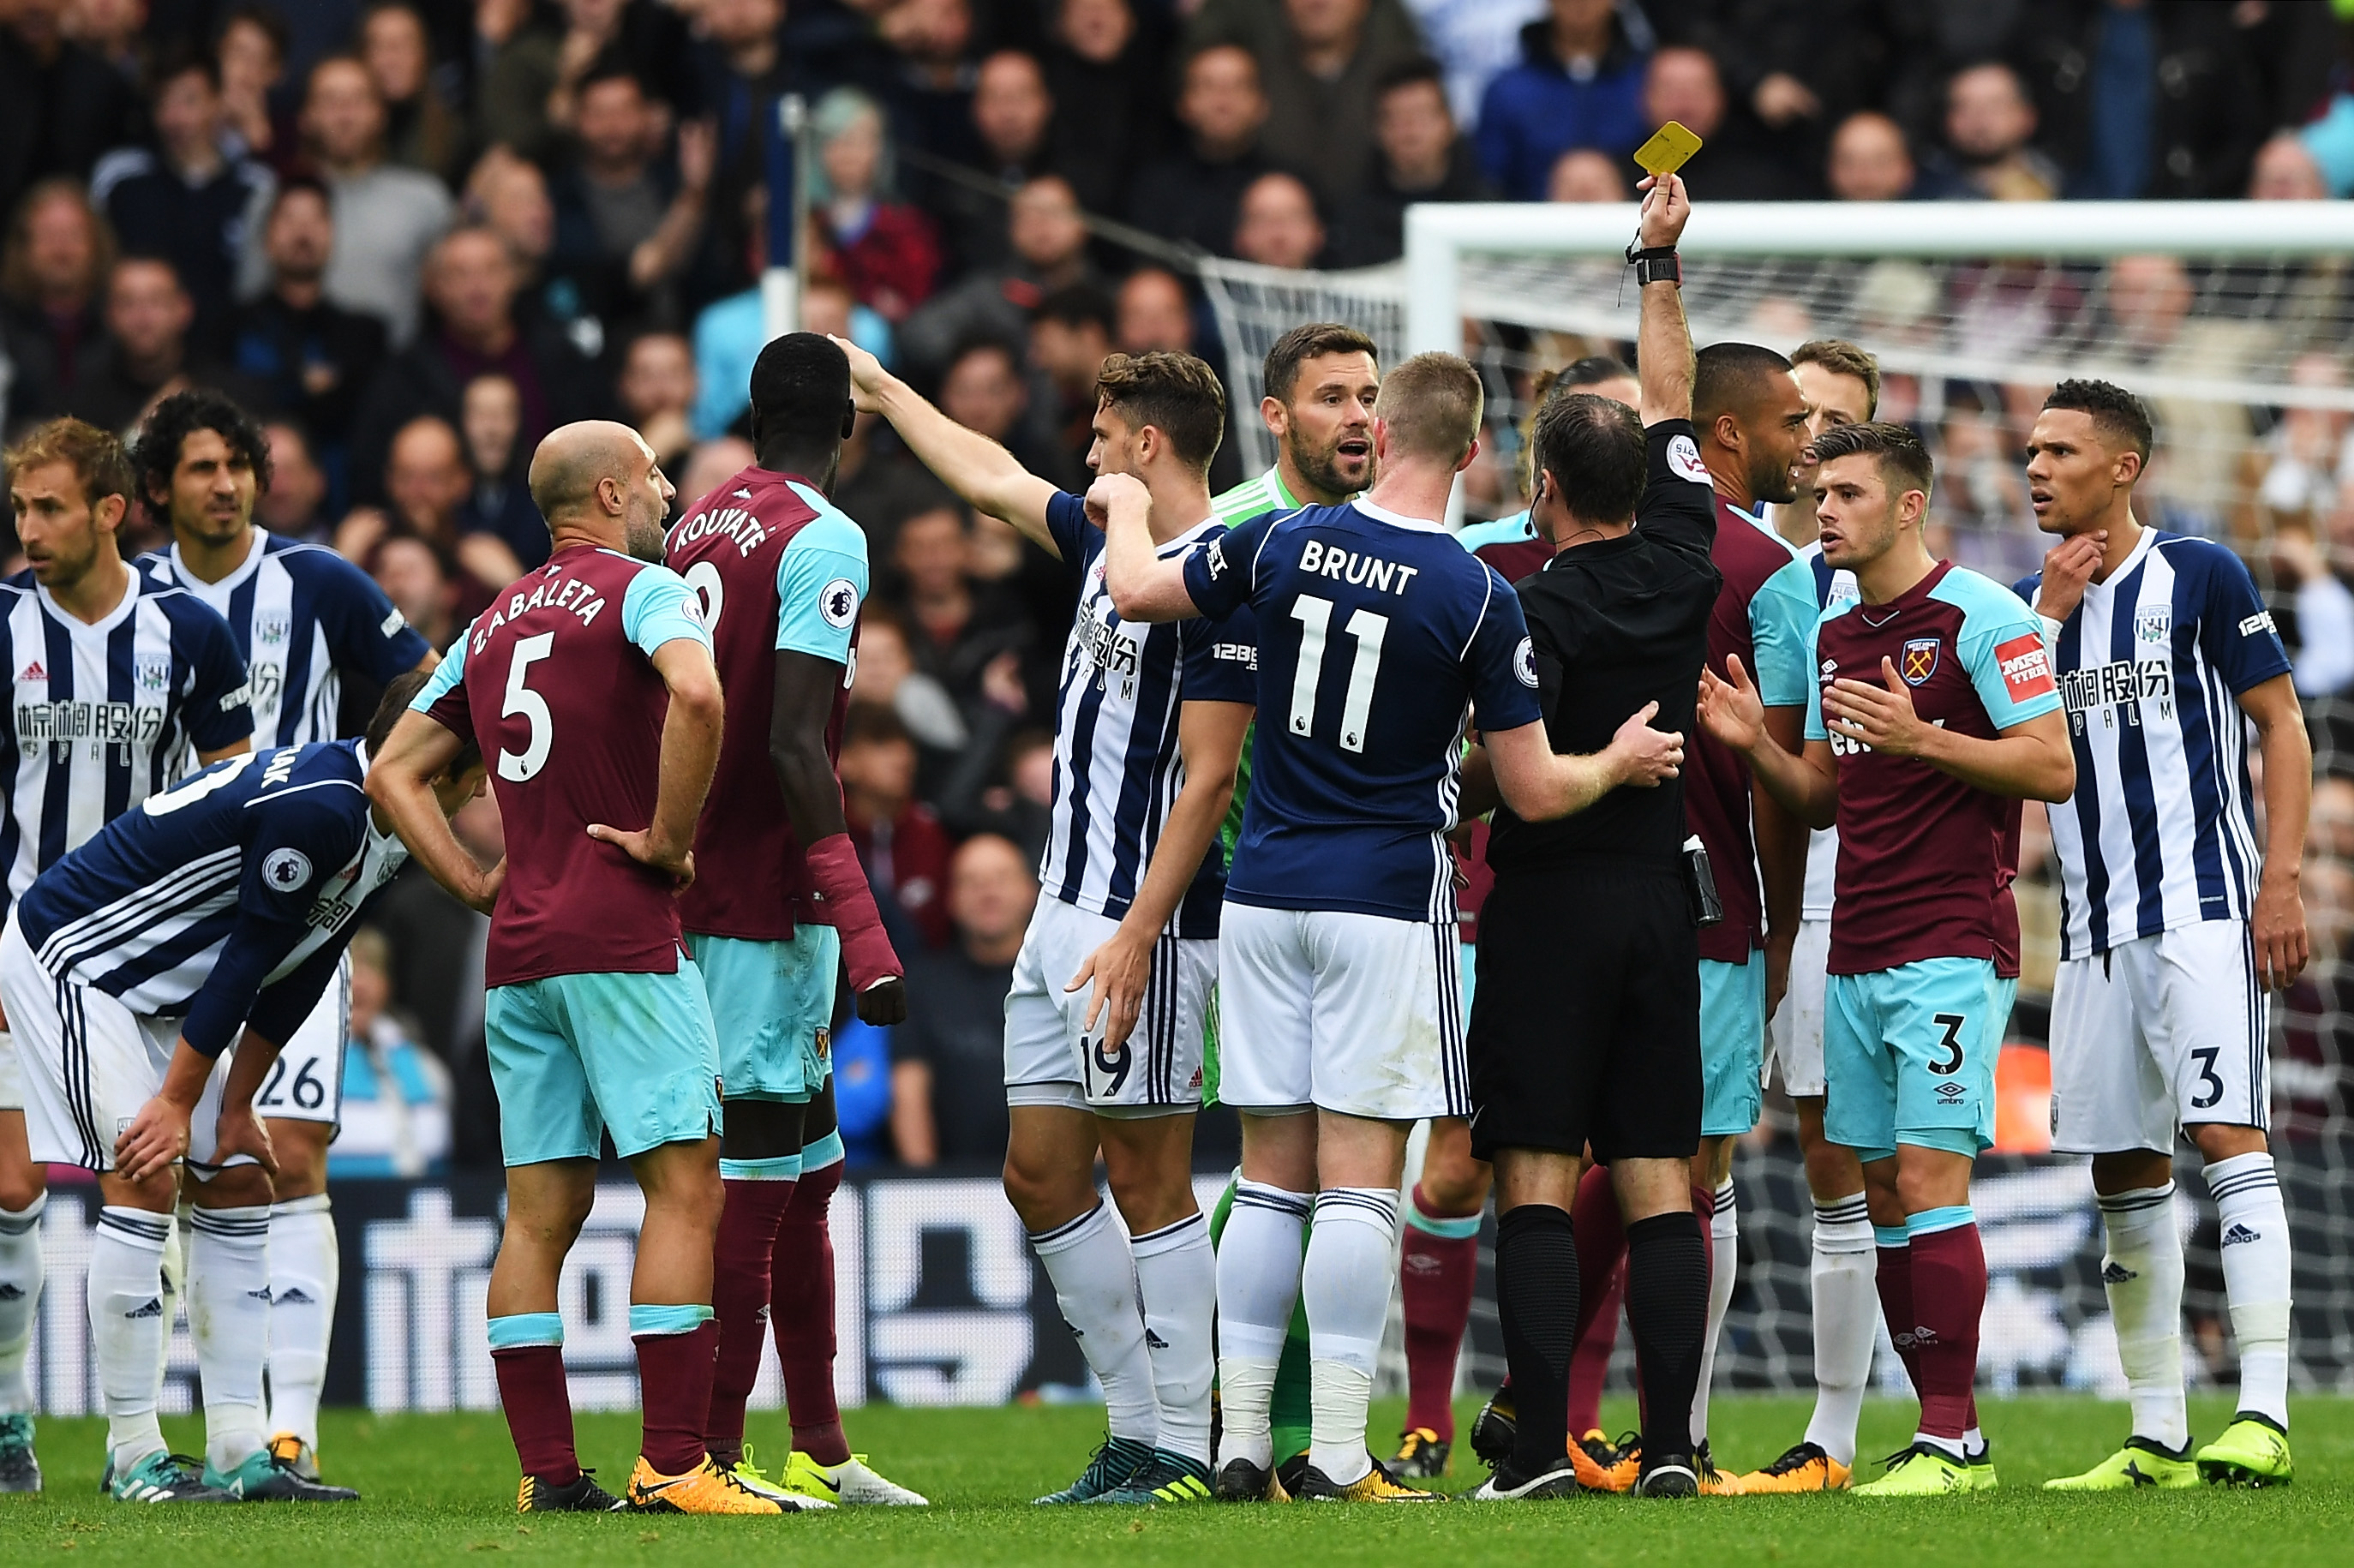 Fortune favours West Brom in Hammers stalemate